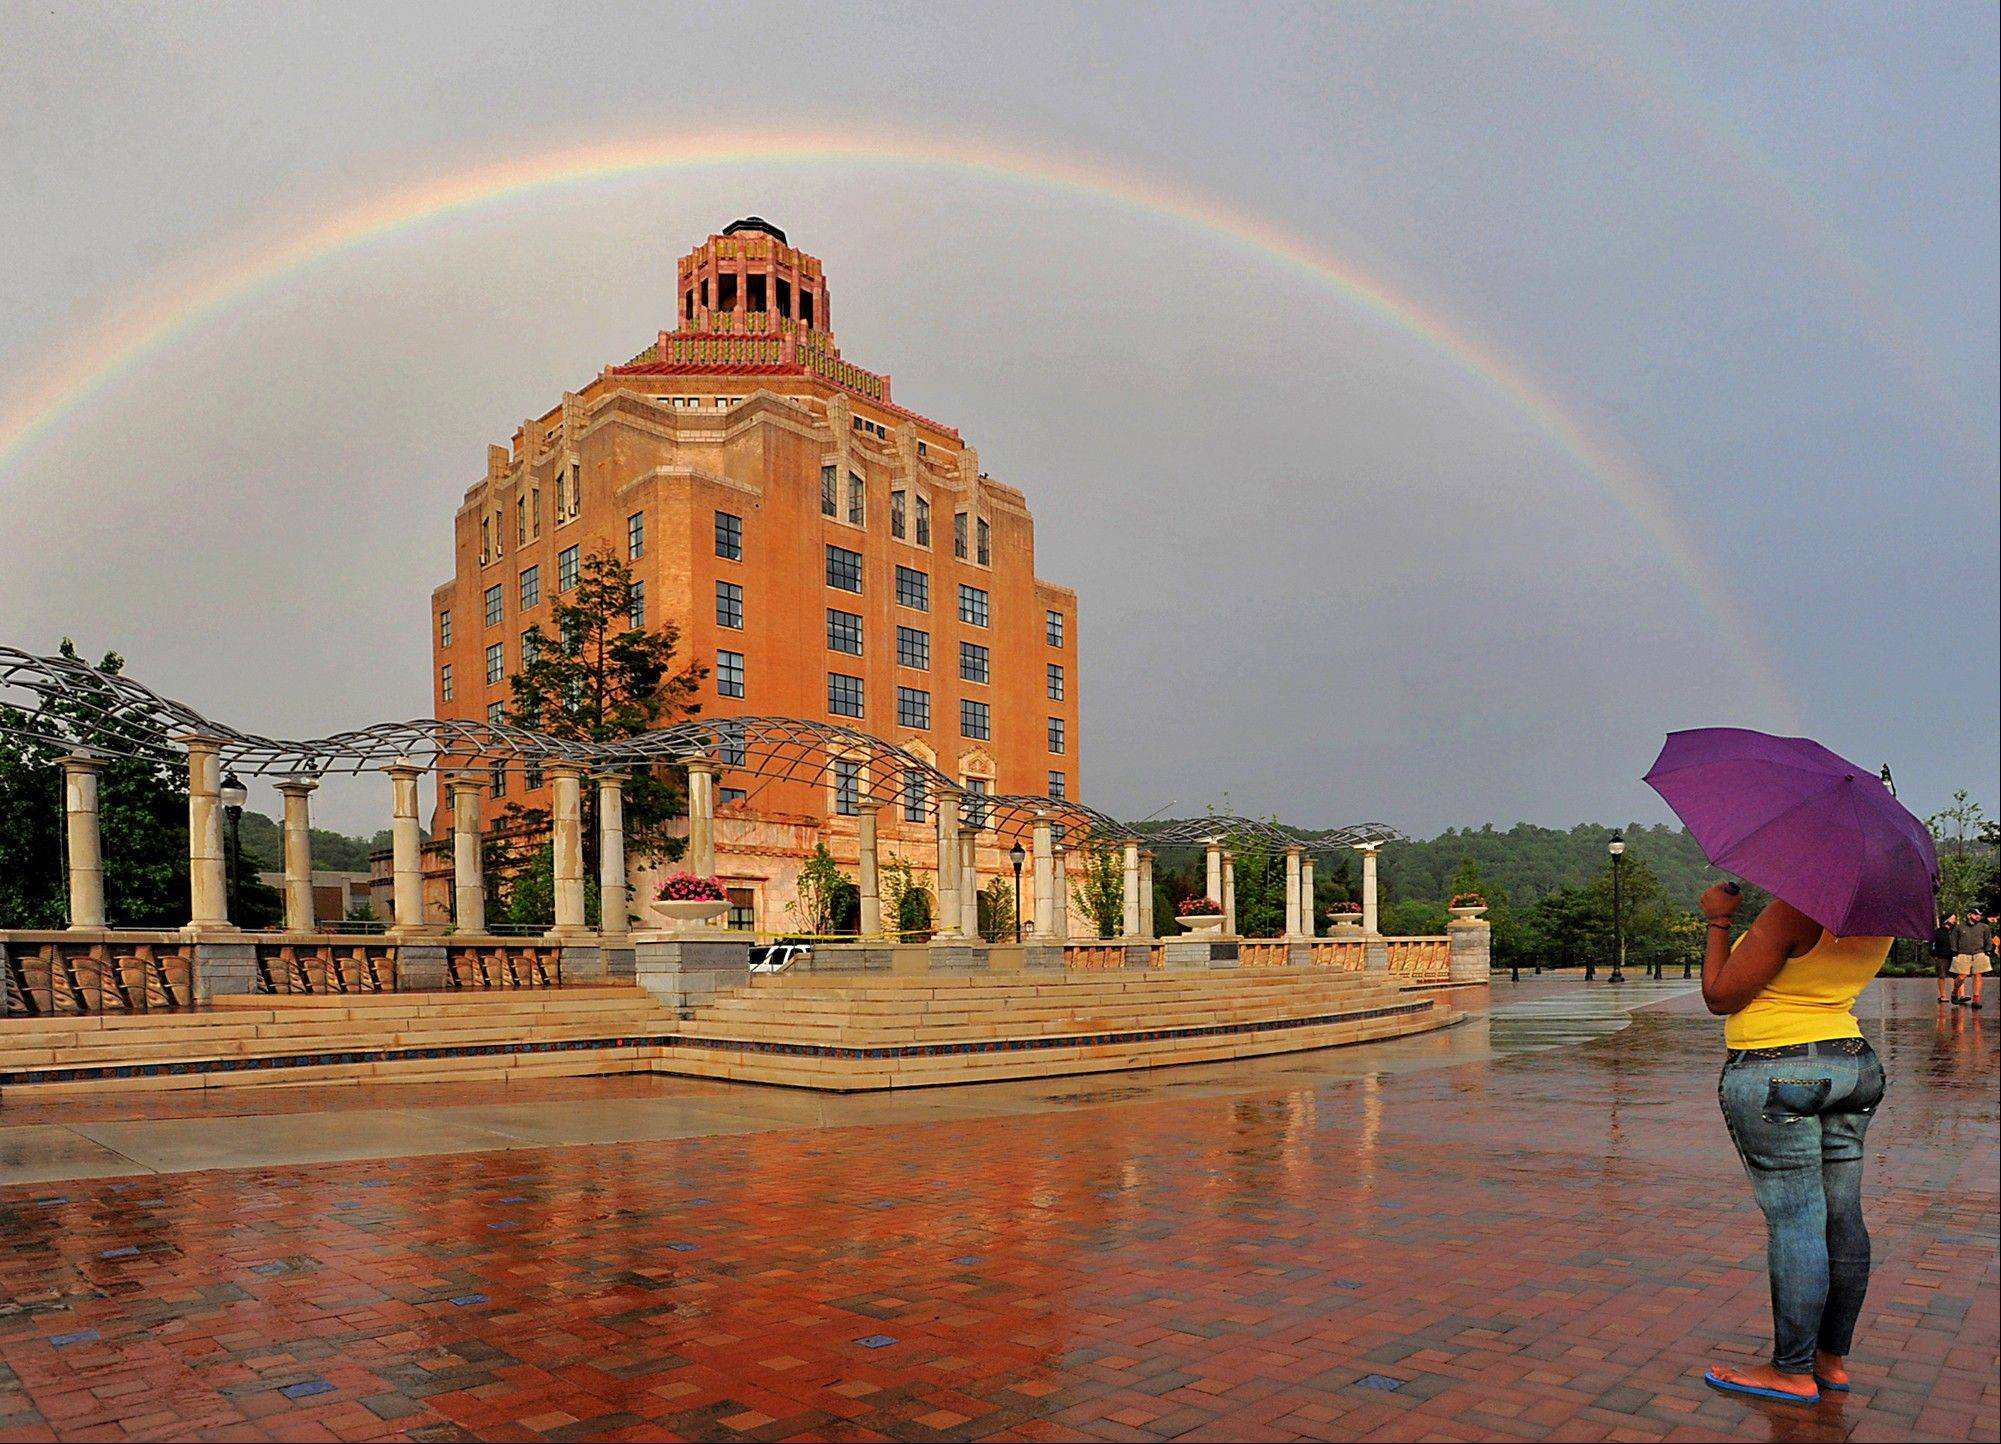 A rainbow forms over the City Hall building in Asheville, N.C. The idea of people who uproot and move when they retire conjures up images of warm, sunny Florida or Arizona. But some of the older members of the baby boom generation -- the 78 million Americans born between 1946 and 1964 -- are looking elsewhere, and a number of towns in cooler climates from Maine to Washington have become popular retirement destinations. Asheville has also merited mention in the lists of best places for retirees.